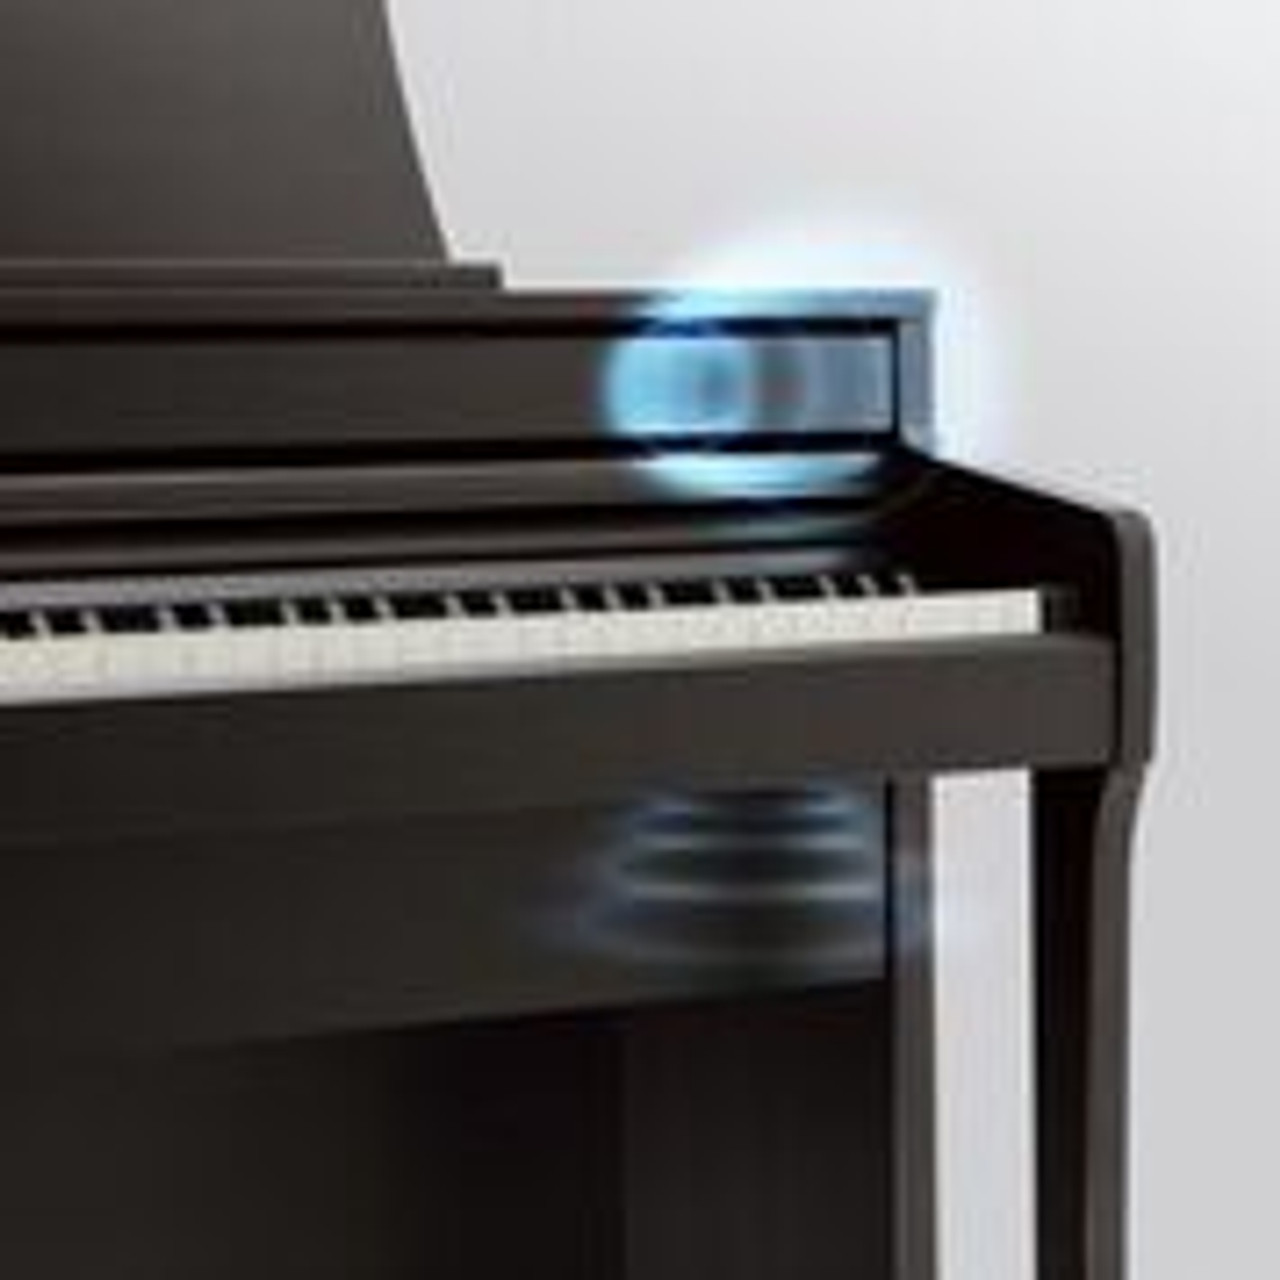 Piano sound: Celebrated concert grand pianos, reproduced using high-performance technologies  The rich, expressive sound of Kawai's celebrated concert grand pianos are at the heart of the new CA49, with both the flagship Shigeru Kawai SK-EX and highly-acclaimed Kawai EX instruments lovingly recorded and faithfully produced using full 88-key stereo sampling. With two distinctive Kawai concert grand pianos and a traditional upright readily available, players can explore a variety of different piano sounds, and enjoy the contrasting properties of each. This latest Concert Artist instrument utilises Kawai's advanced Progressive Harmonic Imaging technology, with algorithms that reproduce how an acoustic piano's tonal character changes as dynamics increase. This ensures seamless expression when playing from gentle pianissimo to thunderous fortissimo, without sudden changes in sound, while impressive polyphony specifications allow players to perform complicated pieces without held notes 'dropping out' unexpectedly.    These realistic piano sounds are delivered using high-performance sound hardware developed in partnership with Onkyo, one of Japan's leading audio equipment manufacturers. This technology ensures a faithful reproduction of the acoustic source, delivering crystal clear piano sounds with low-noise and minimal distortion, while the powerful 4-speaker delivery systems utilised by each model reproduce the sound field of a grand piano.